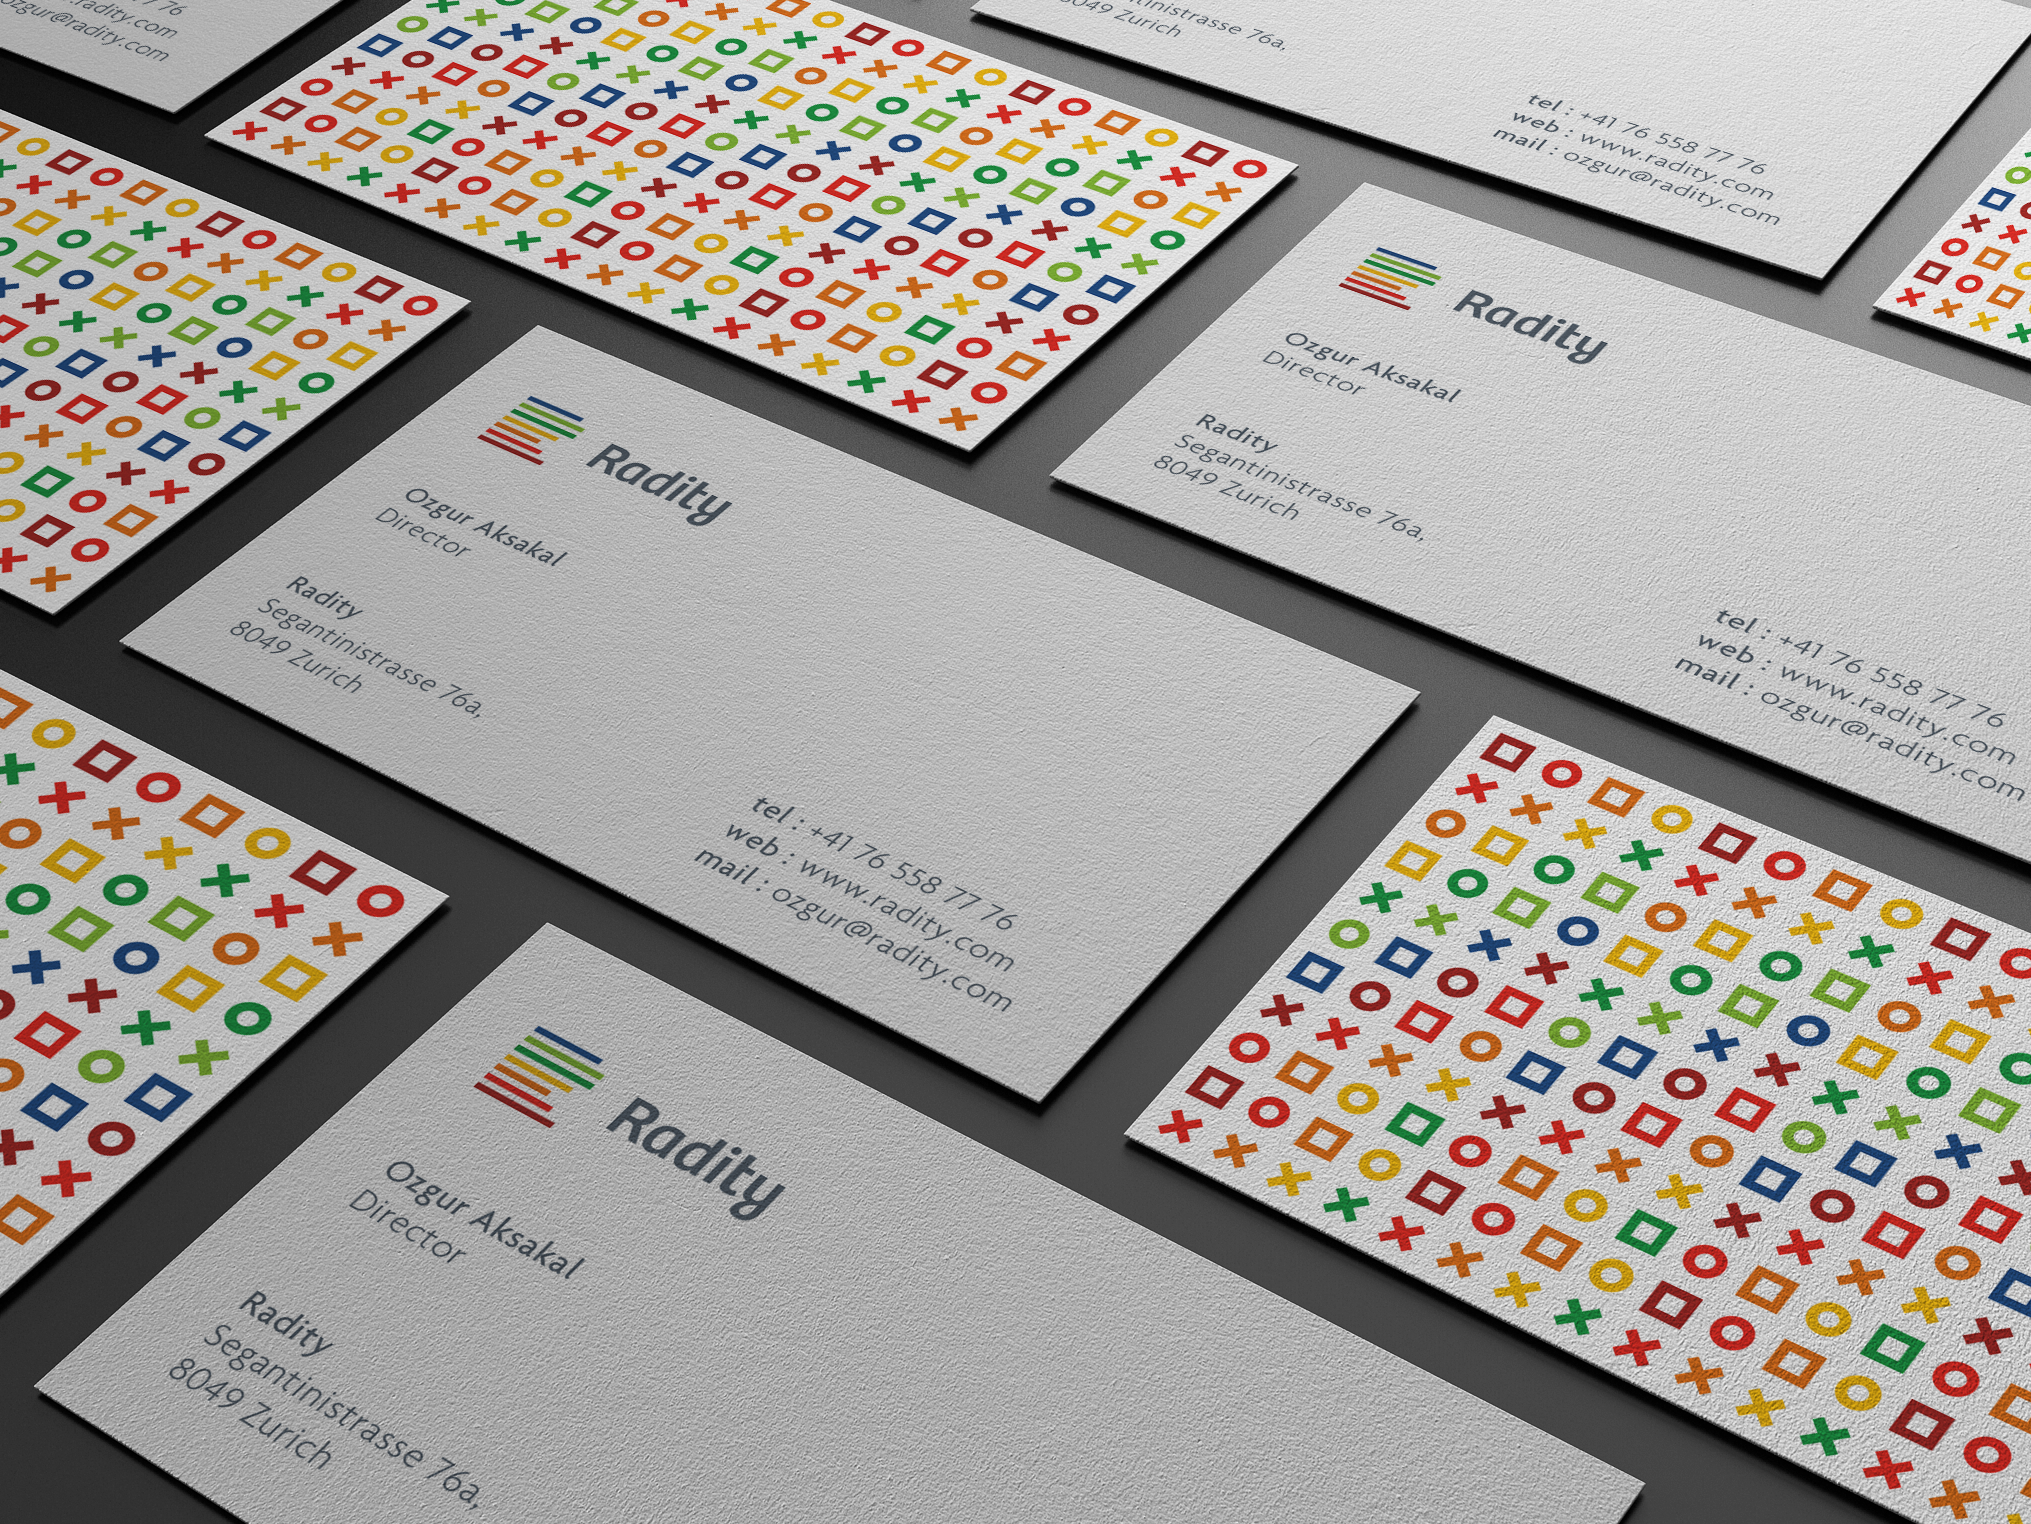 50 unusual and brilliant business card designs and ideas for you